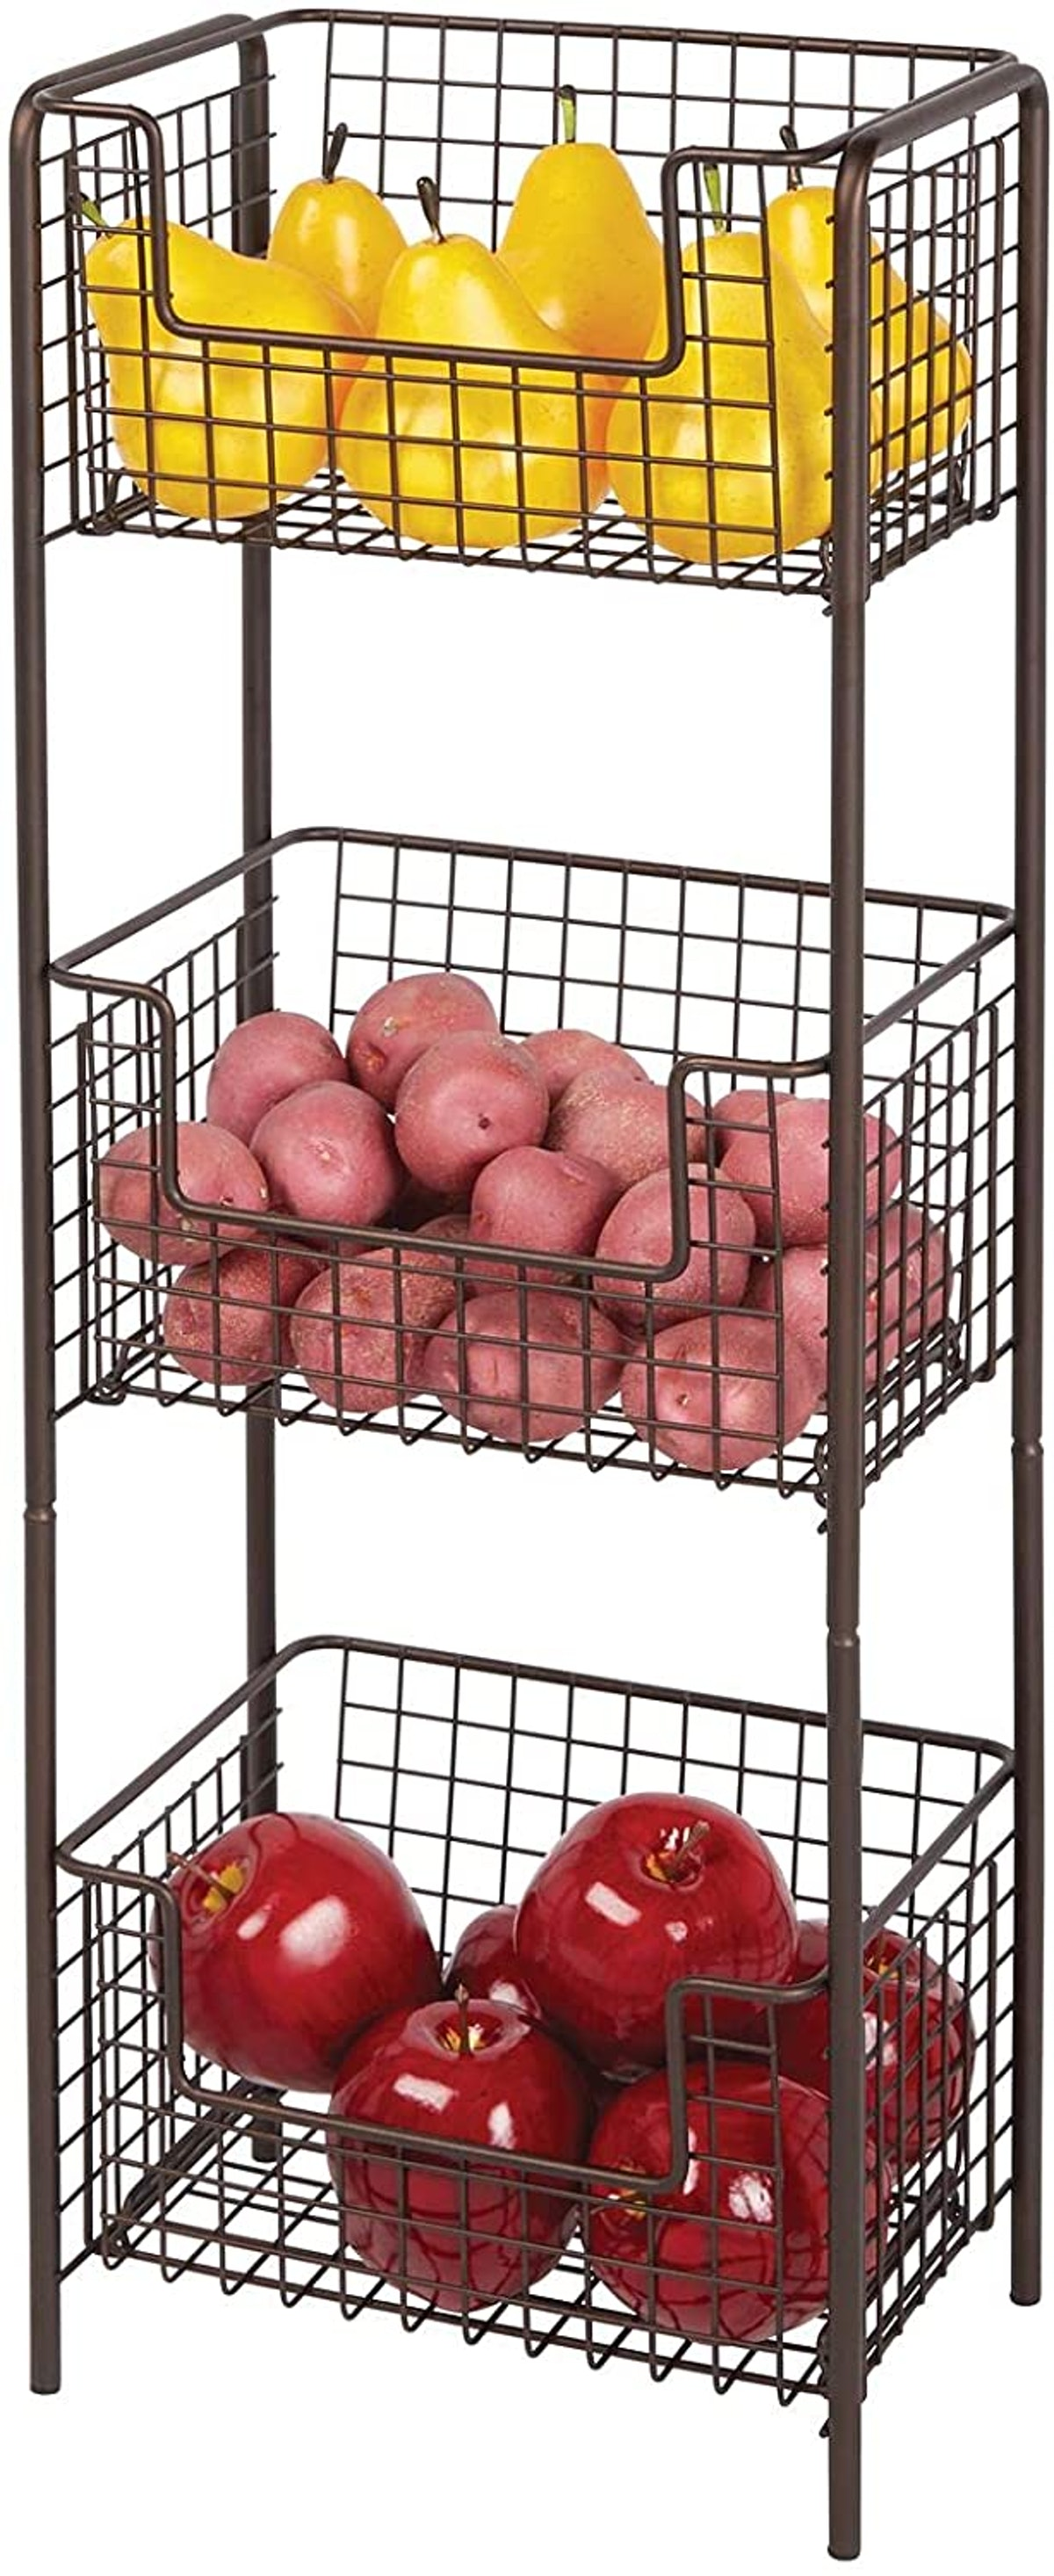 3 Tier Vertical Standing Kitchen Pantry Food Shelving Unit